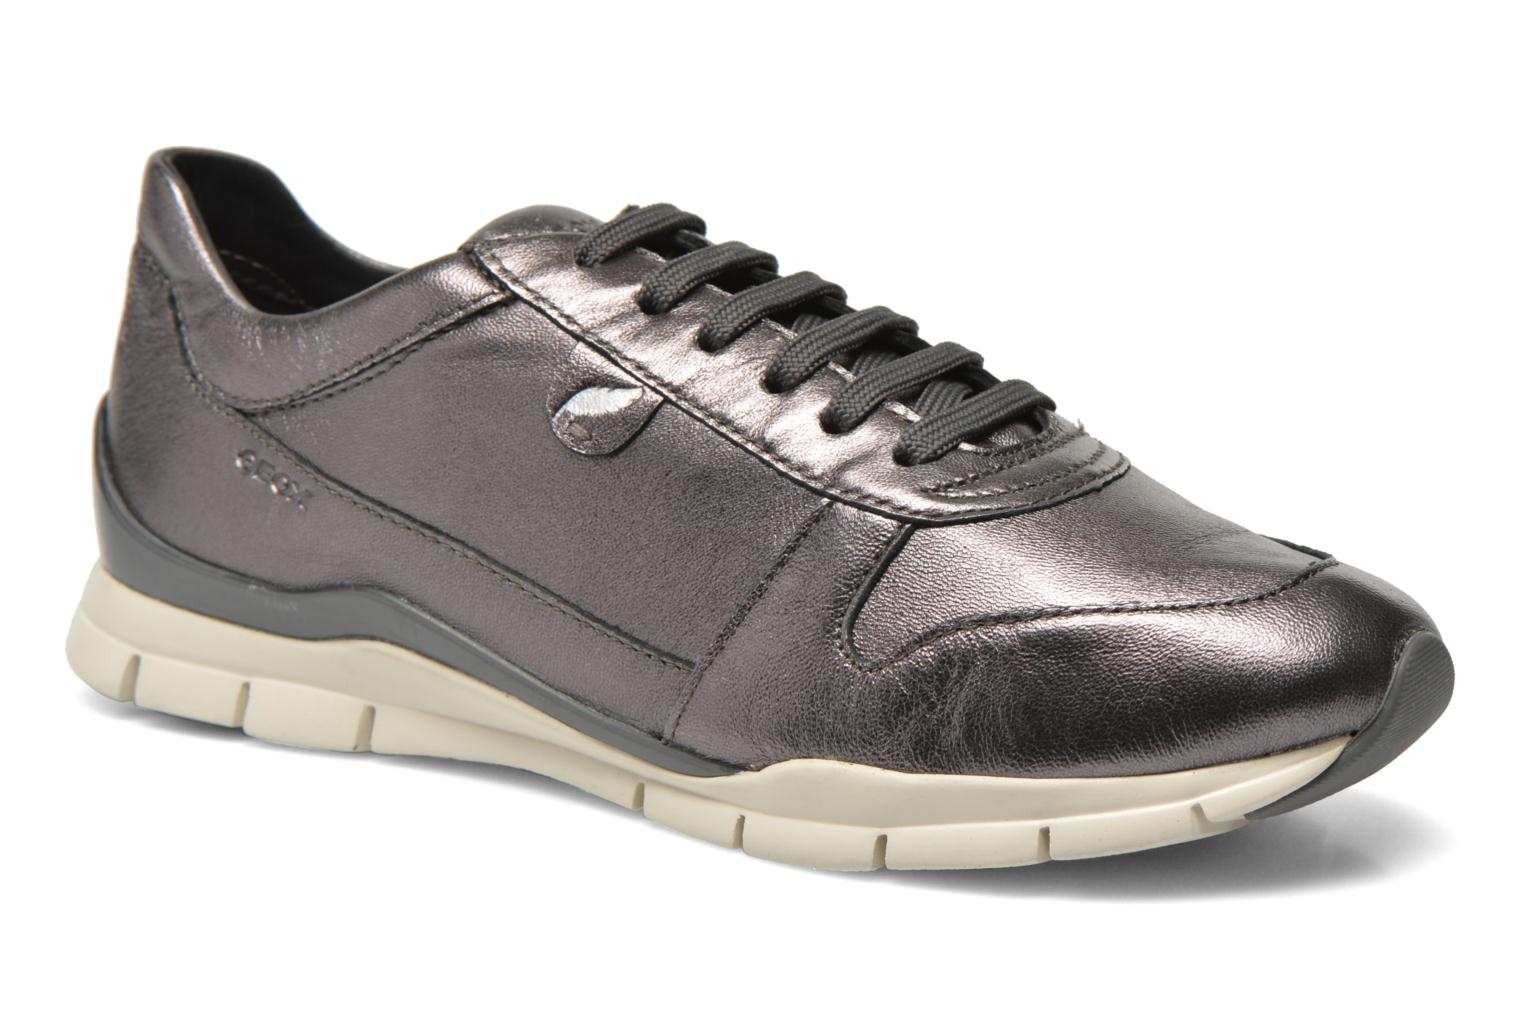 Chaussures Geox Sukie grises Casual fille jOeocjT